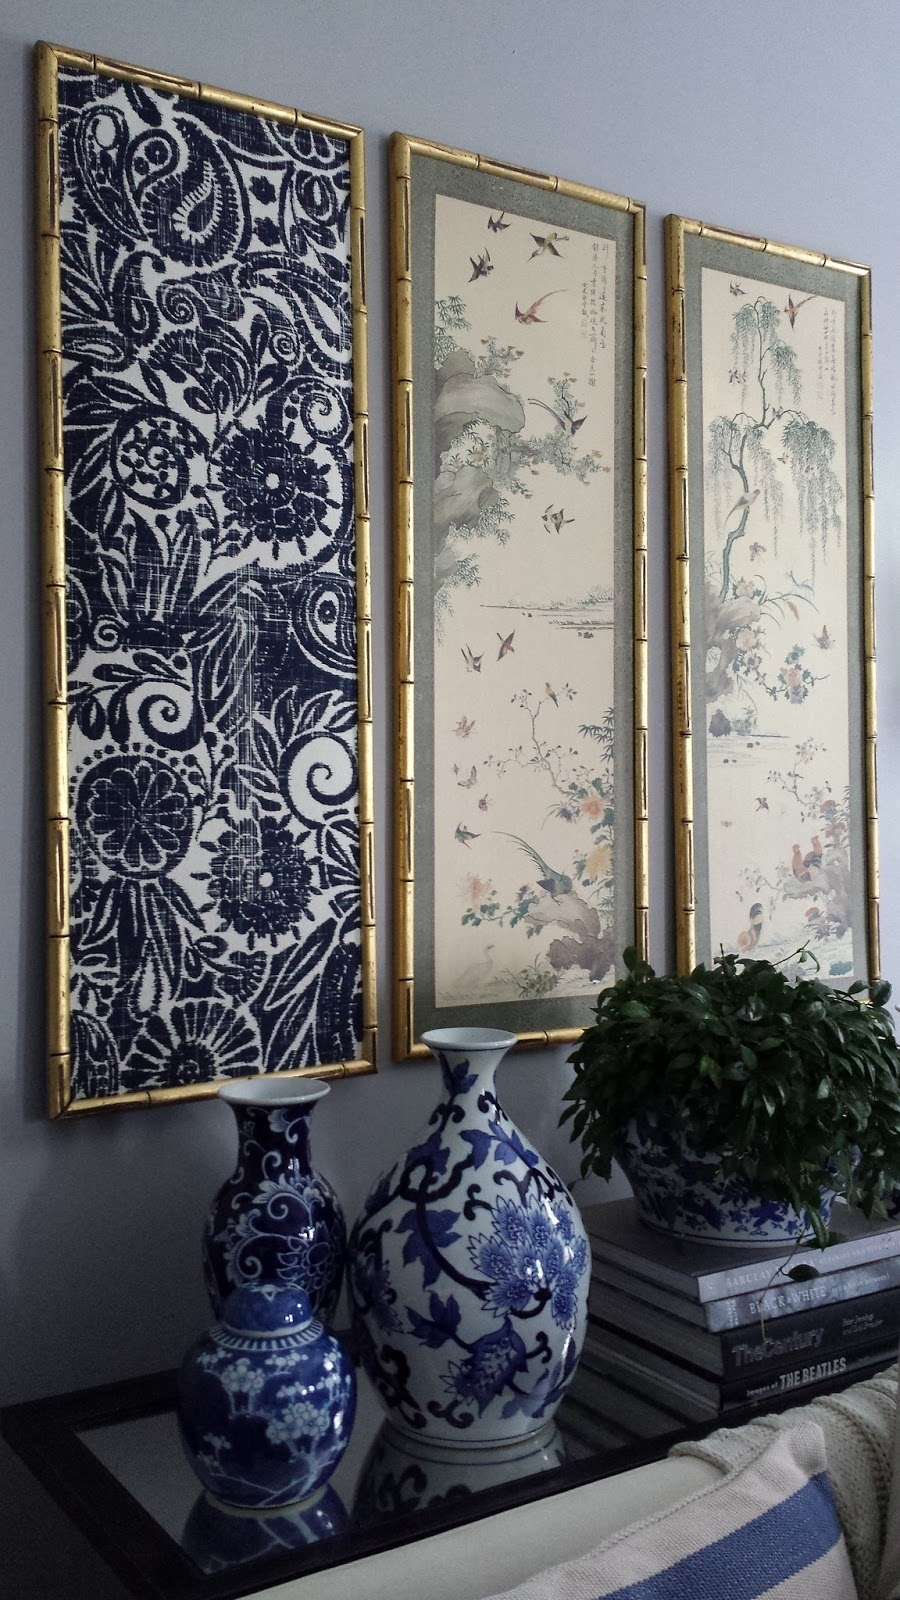 Focal Point Styling: Diy Indigo Wall Art With Framed Fabric Throughout Most Recent Ikat Fabric Wall Art (View 2 of 15)